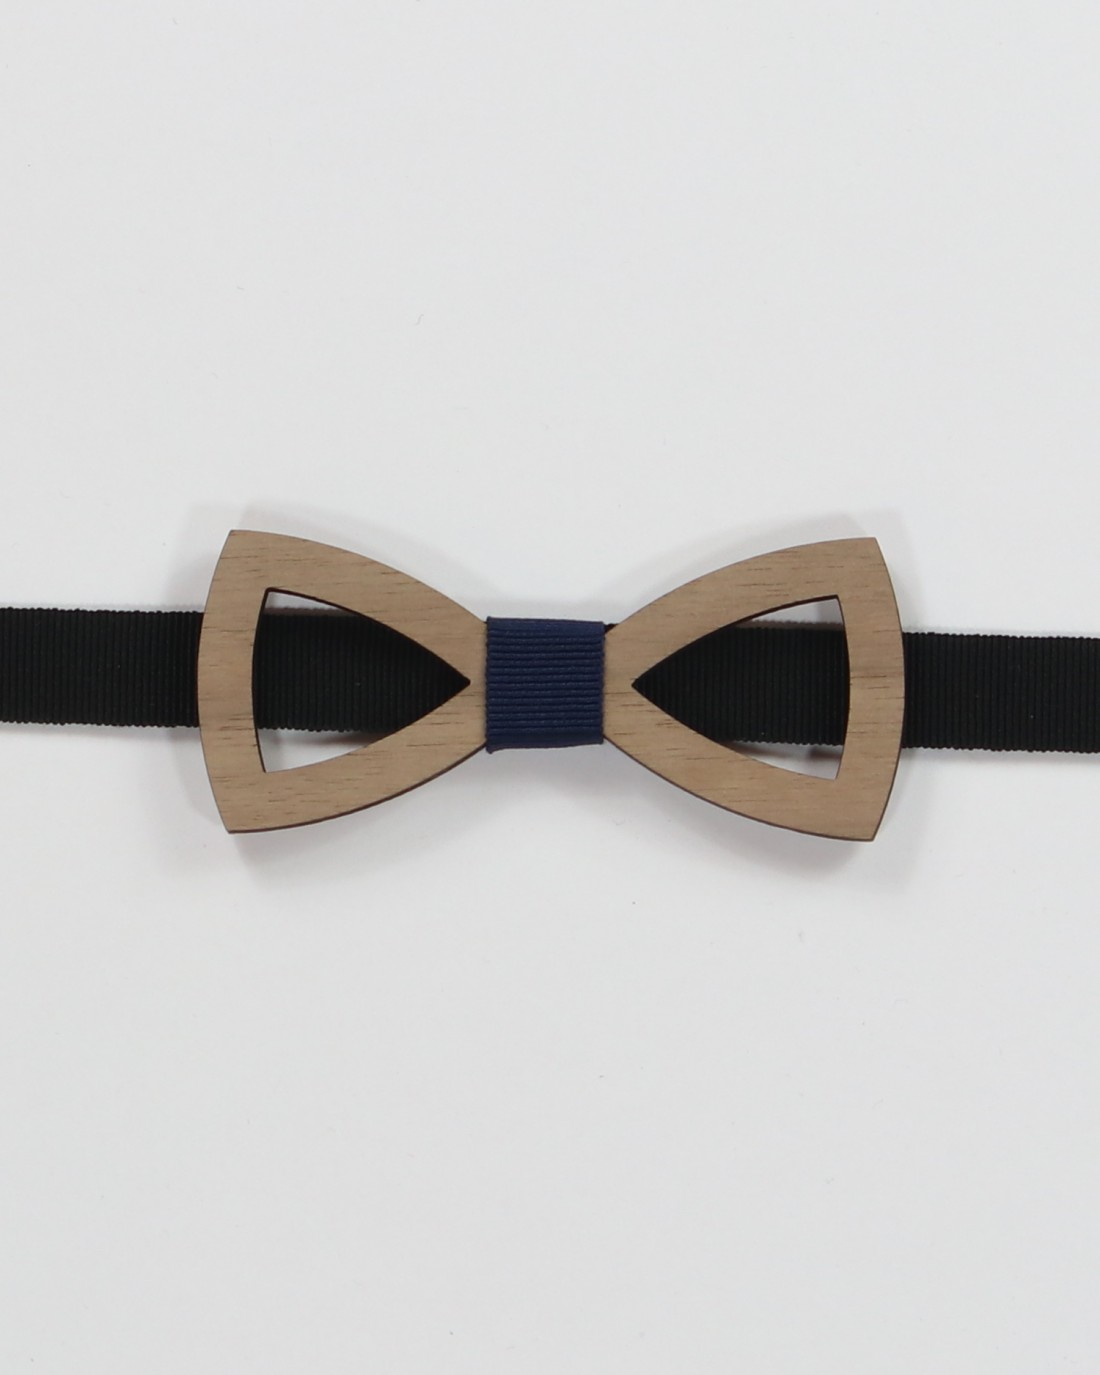 Walnut Shape Bow Tie - Light olive wood with specular holes men's pre tied with adjustable strap